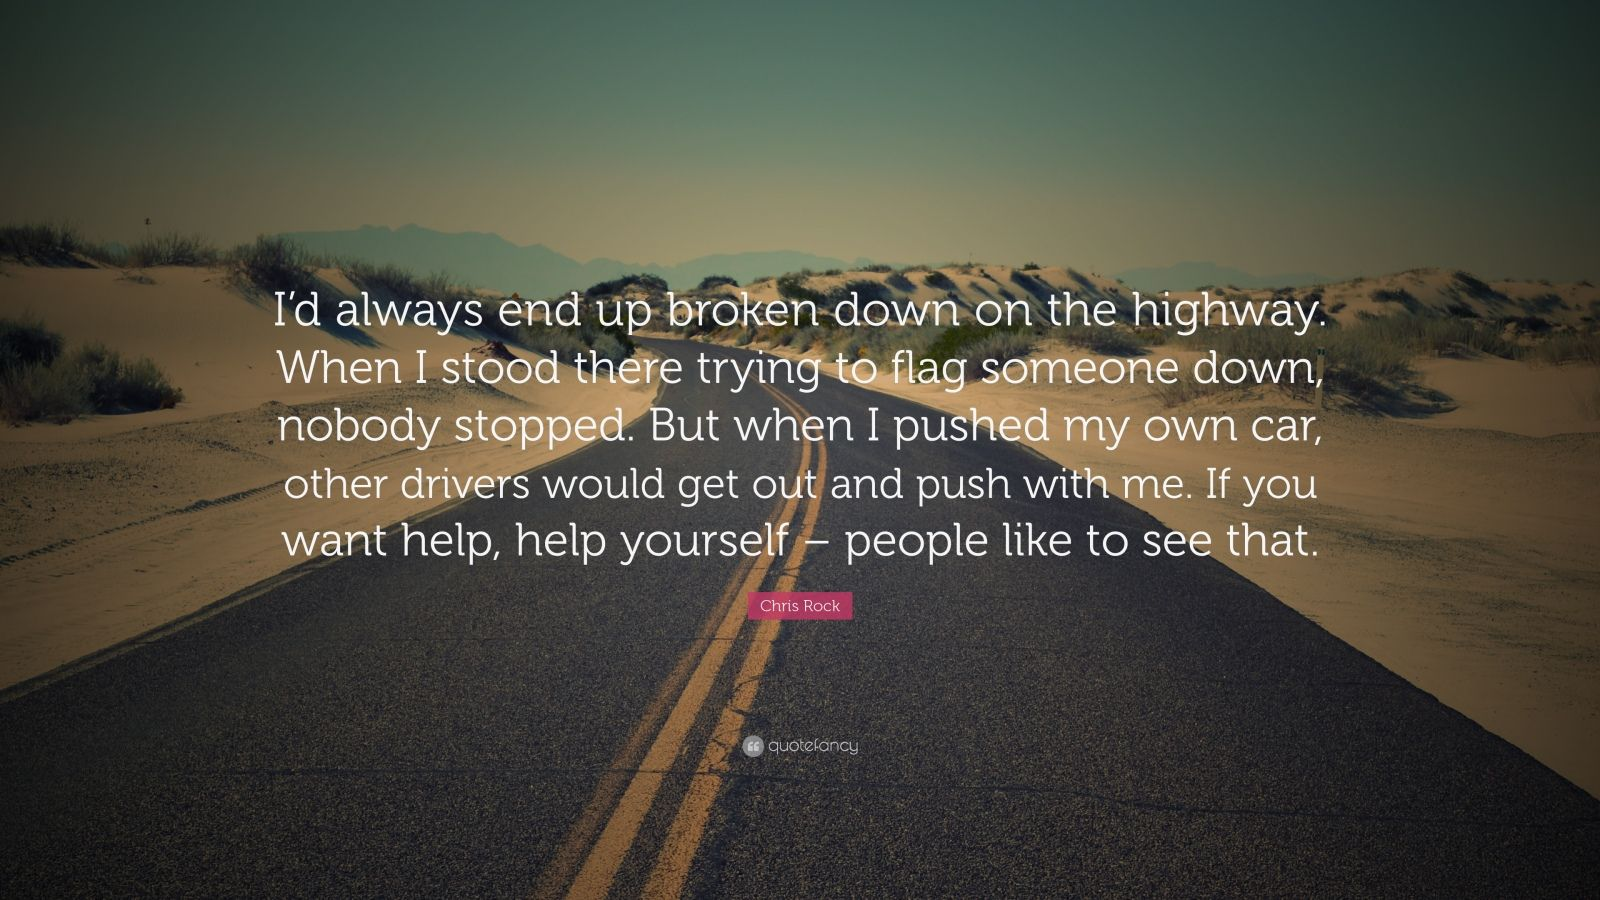 "Chris Rock Quote: ""I'd always end up broken down on the highway. When I stood there trying to flag someone down, nobody stopped. But when I pushed my own car, other drivers would get out and push with me. If you want help, help yourself – people like to see that."""